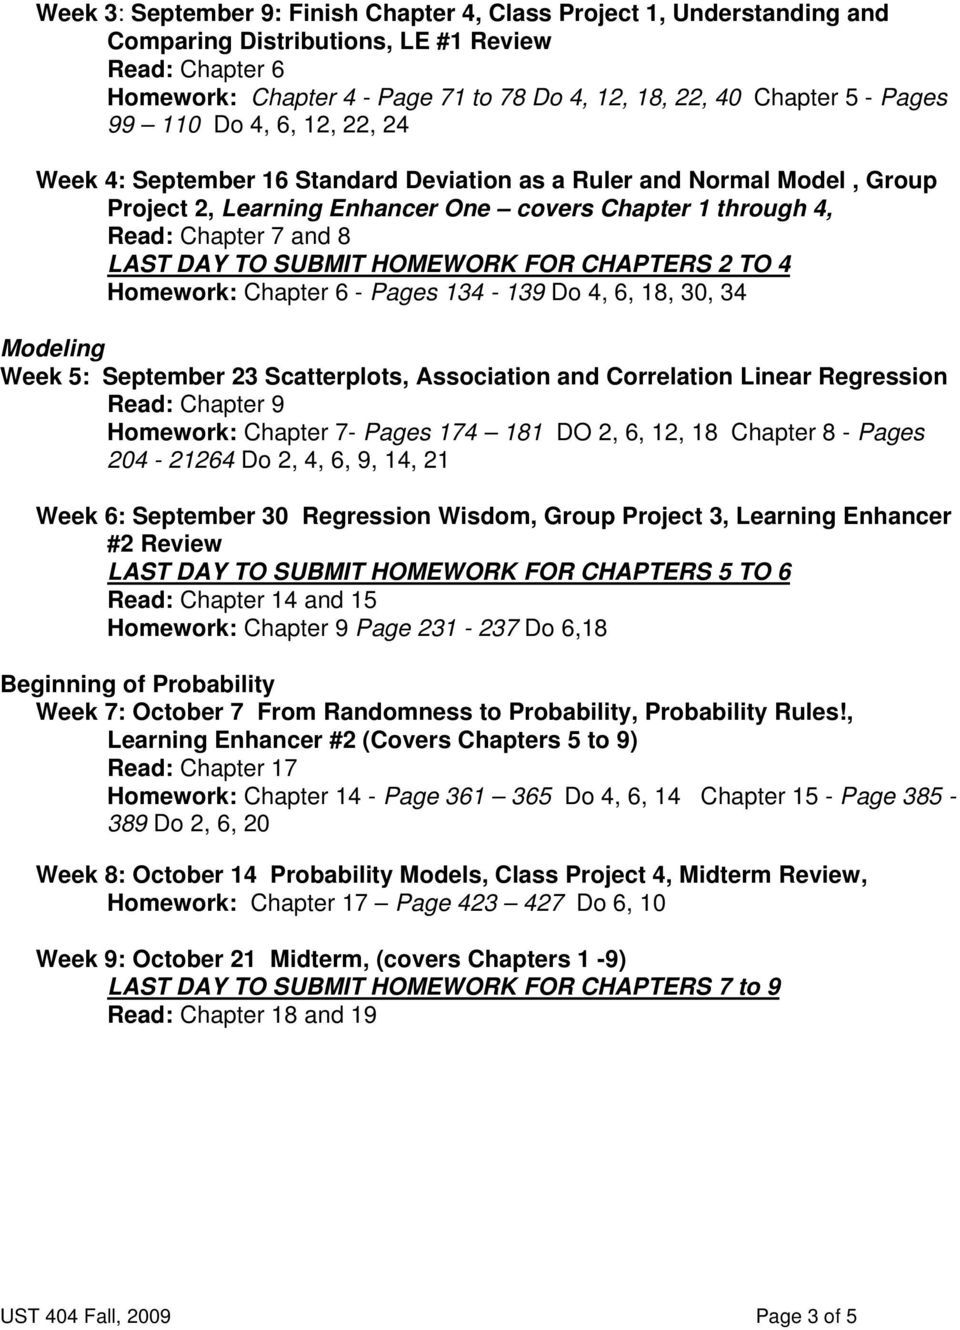 TO SUBMIT HOMEWORK FOR CHAPTERS 2 TO 4 Homework: Chapter 6 - Pages 134-139 Do 4, 6, 18, 30, 34 Modeling Week 5: September 23 Scatterplots, Association and Correlation Linear Regression Read: Chapter